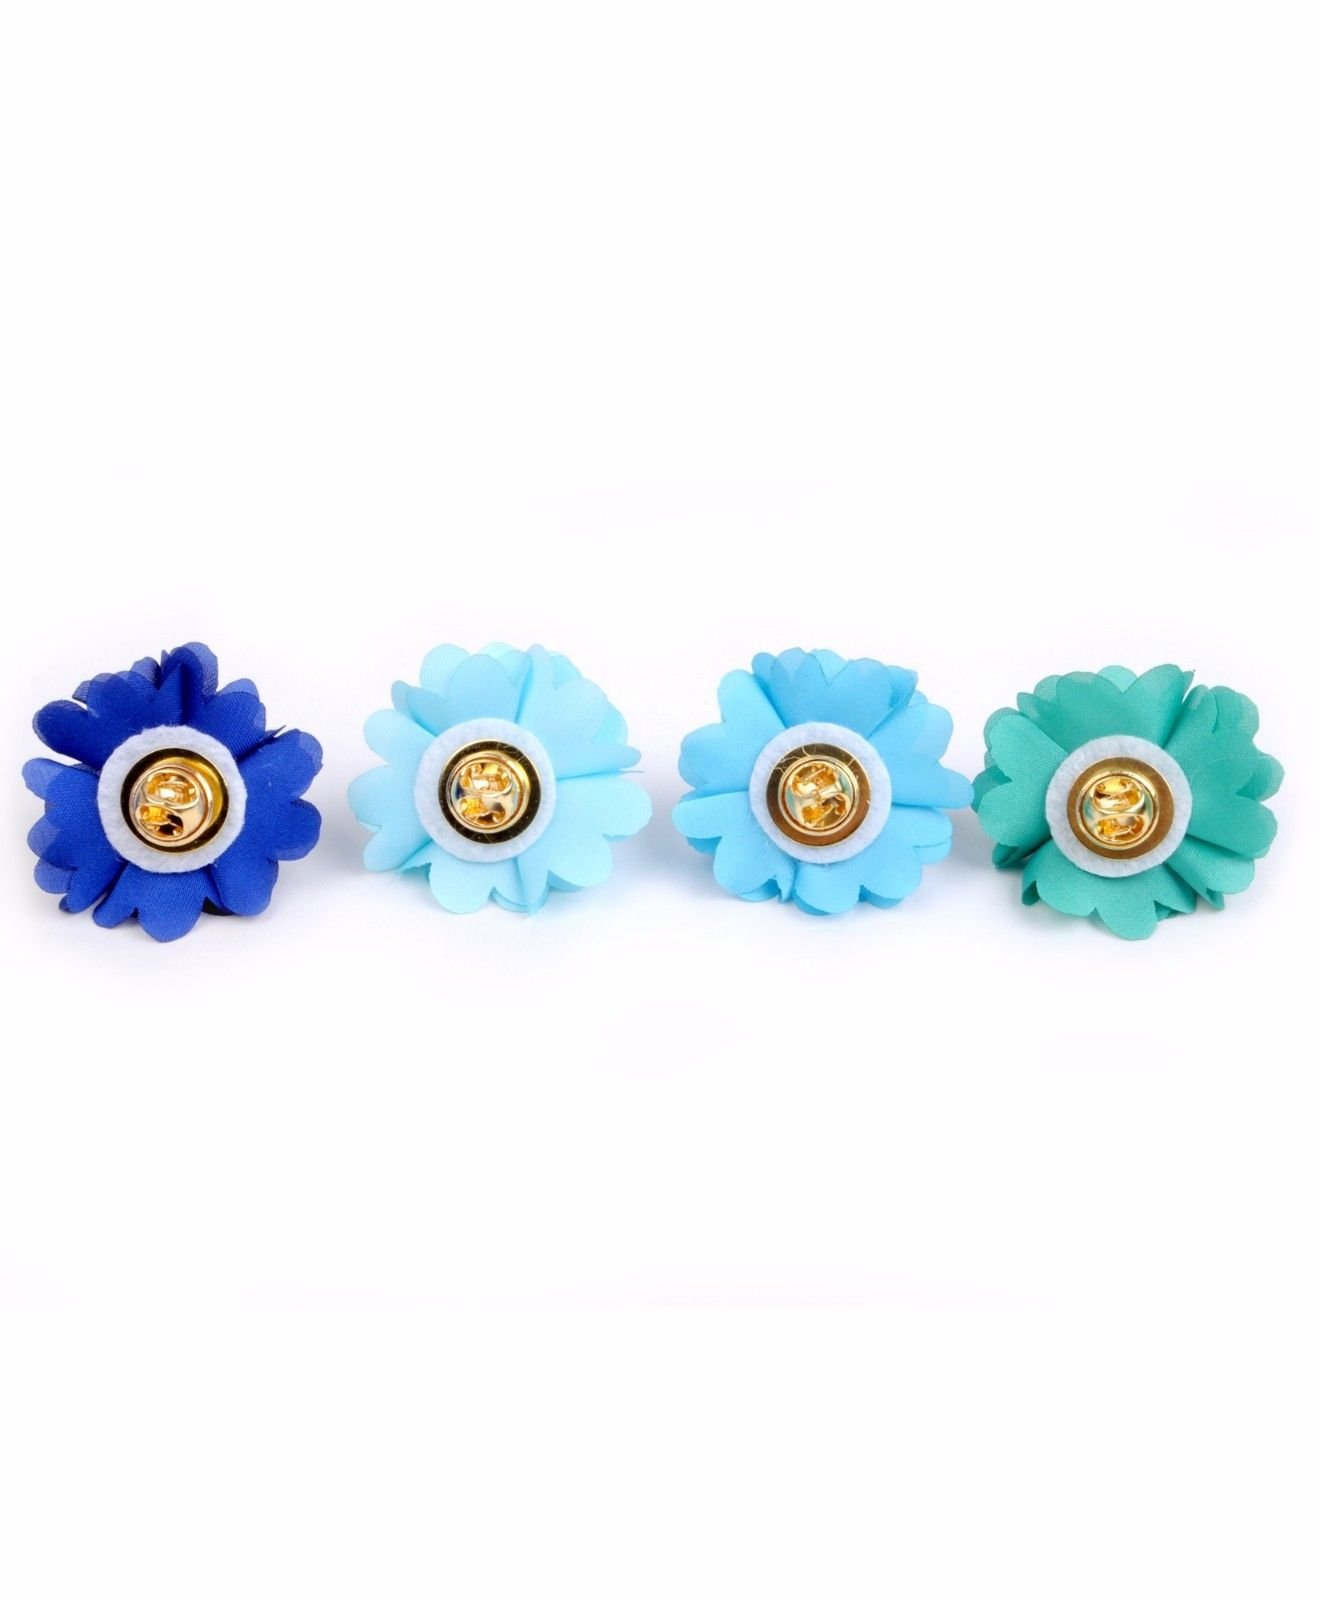 BG-Mini-Bouquet-Clutch-Back-Flower-Tuxedo-Suit-Lapel-Pins-Boutonniere-4-Pack-Set thumbnail 25